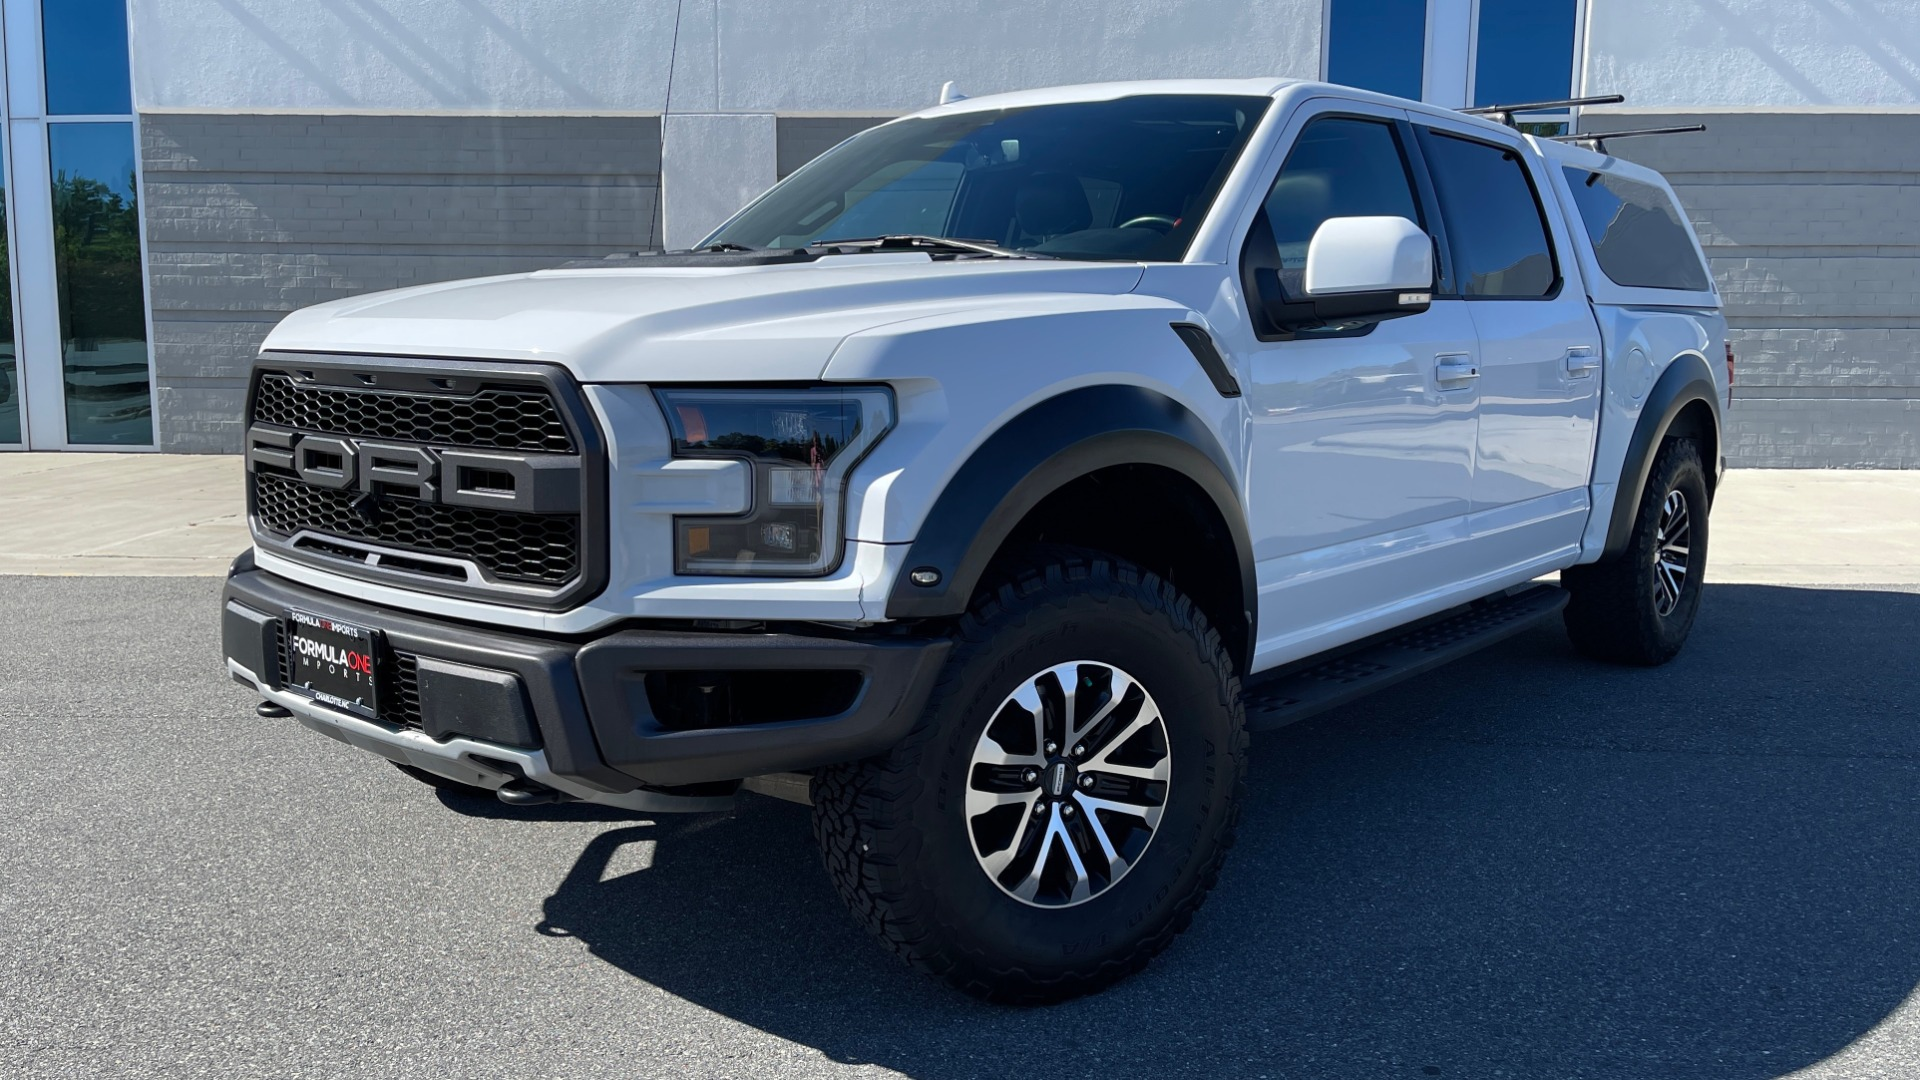 Used 2019 Ford F-150 RAPTOR 4X4 SUPERCREW / NAV / BLIS / B&O SND / REMOTE START / REARVIEW for sale $65,999 at Formula Imports in Charlotte NC 28227 1